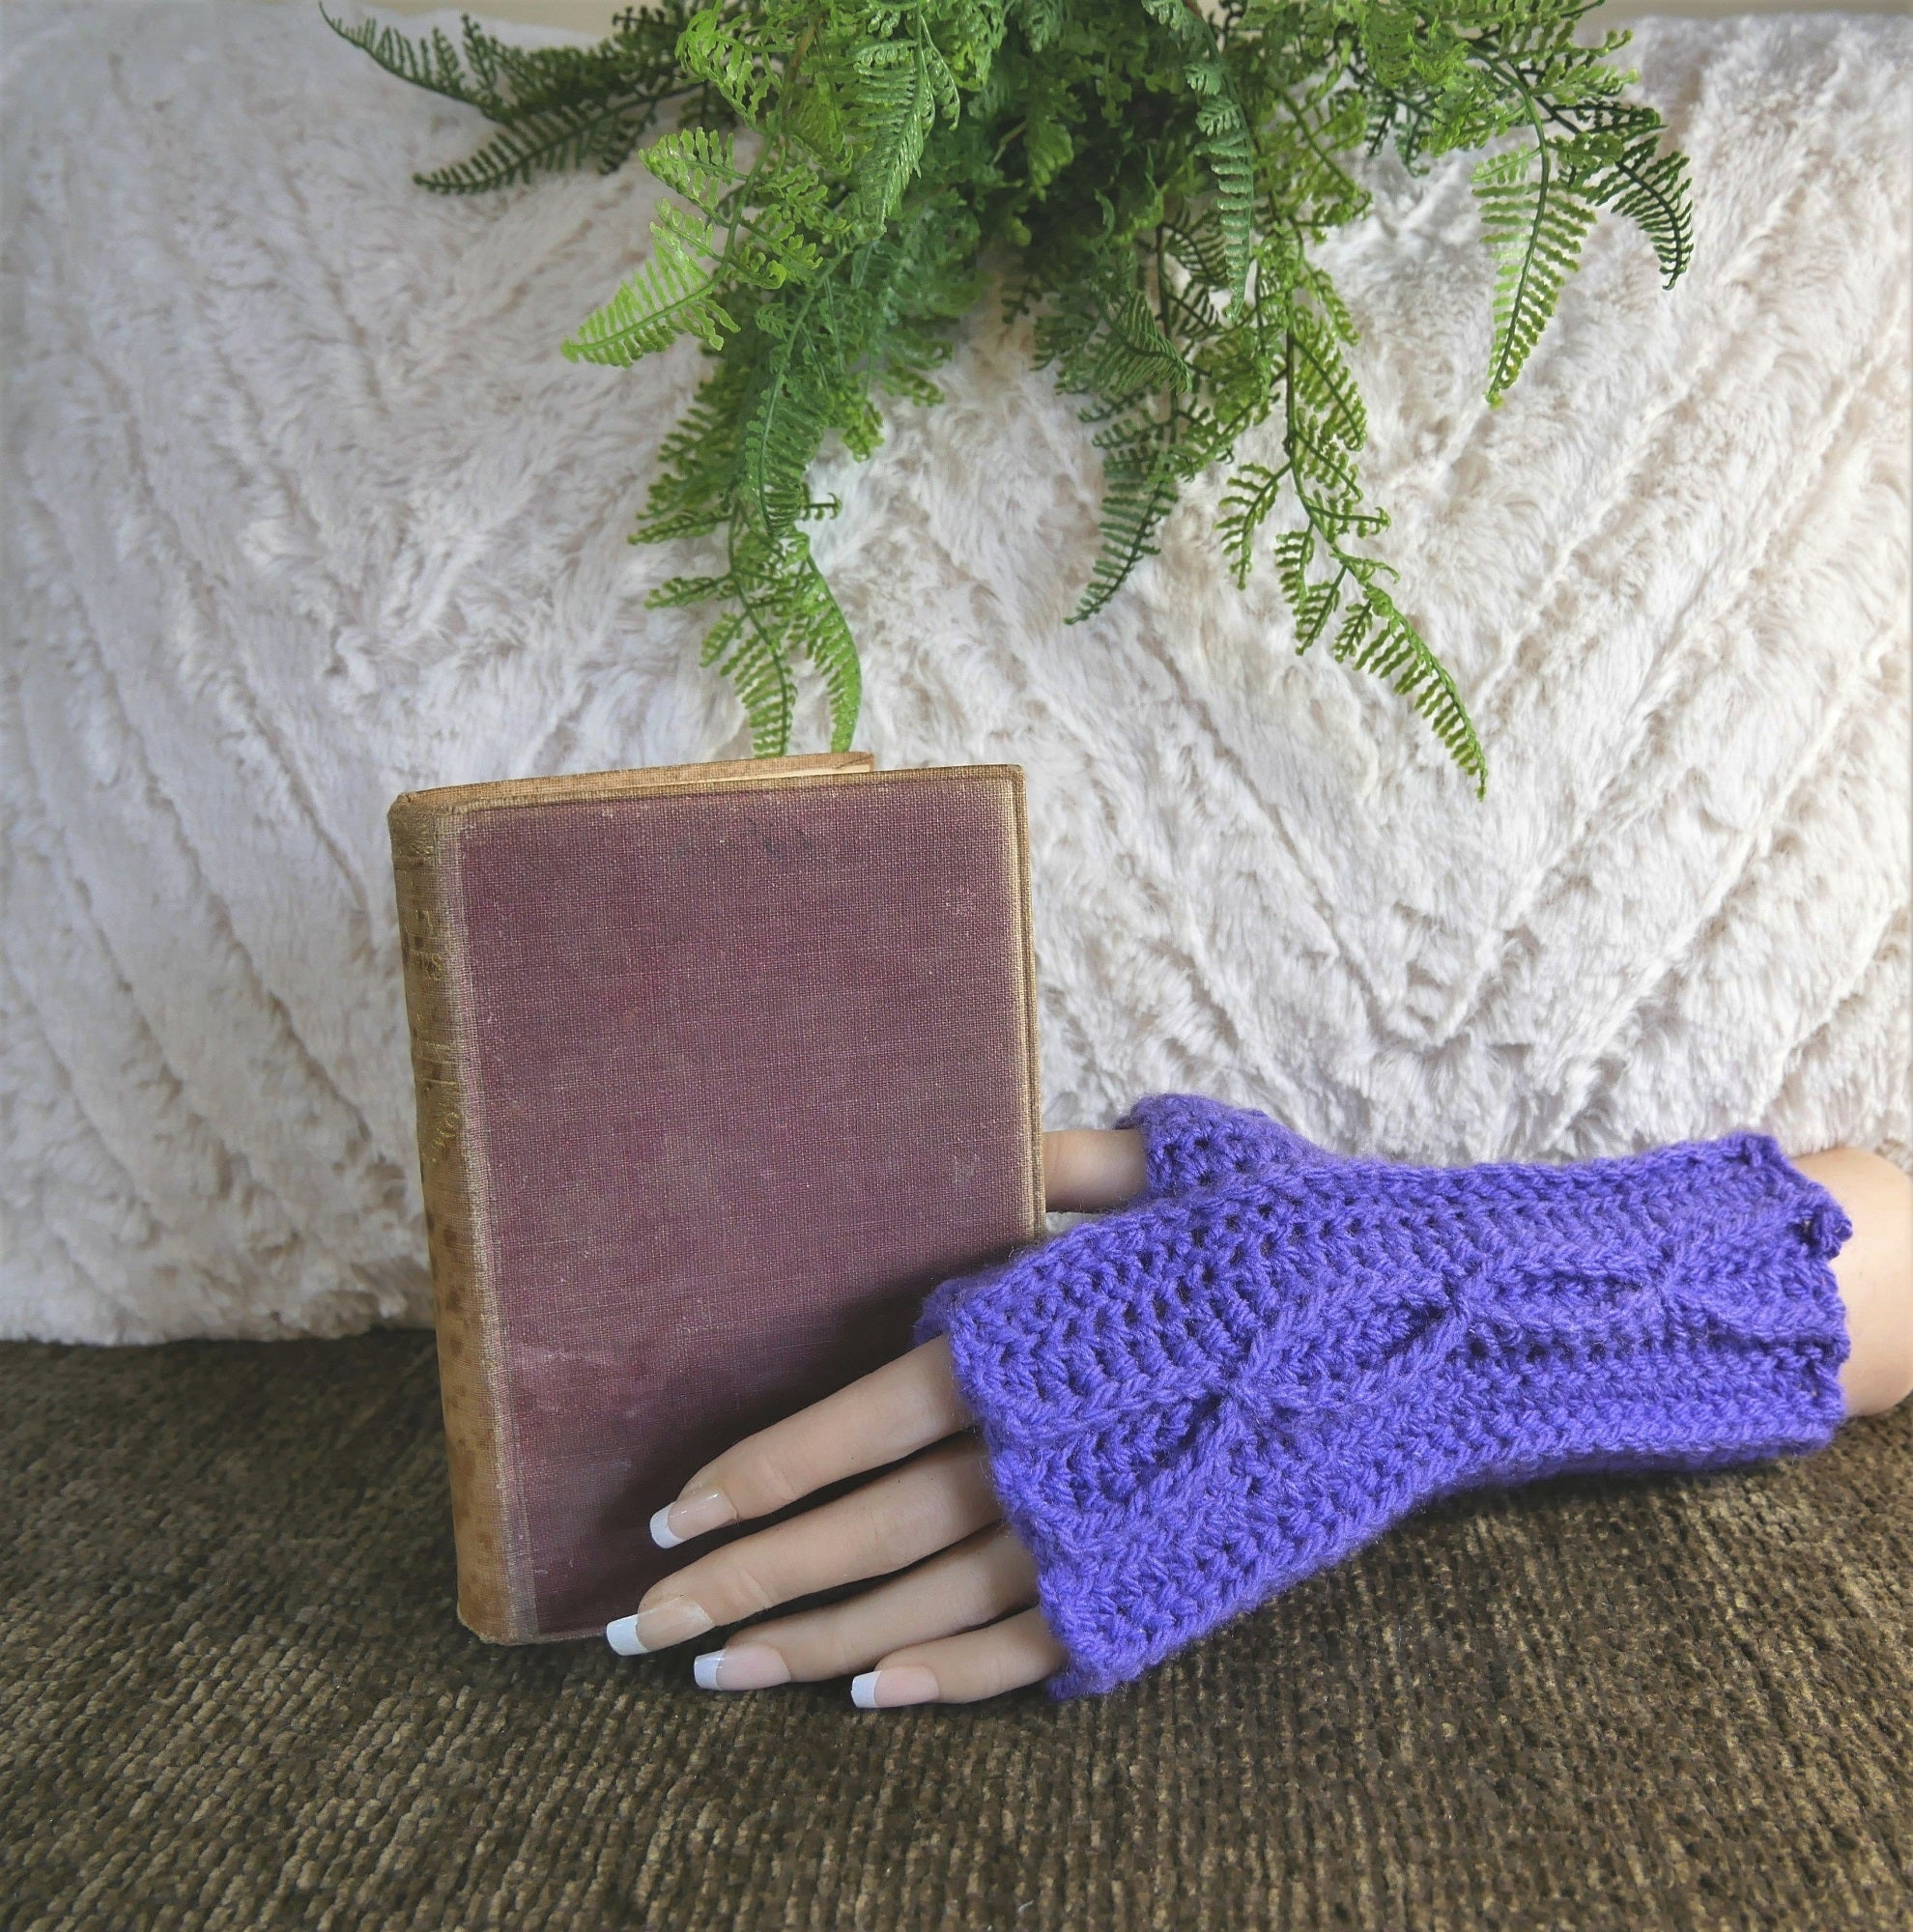 Handmade Fingerless Gloves In Mauve